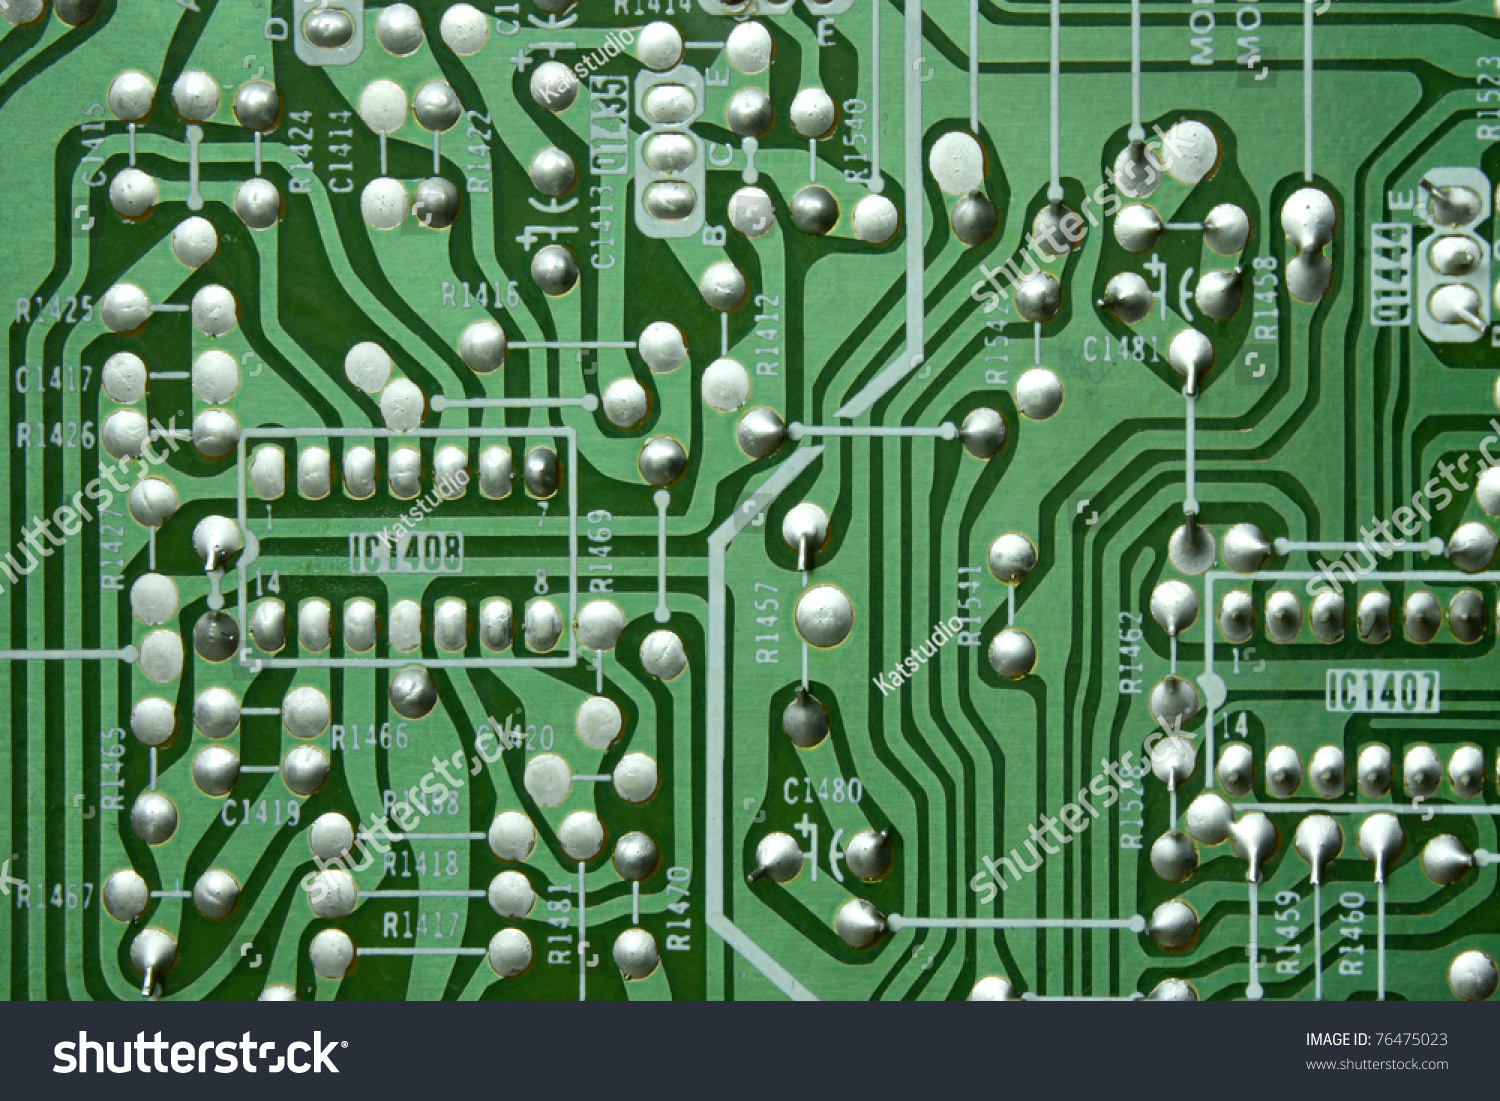 Green Old Circuit Board Electronic Texture Stock Photo Edit Now Electronics Royalty Free Image